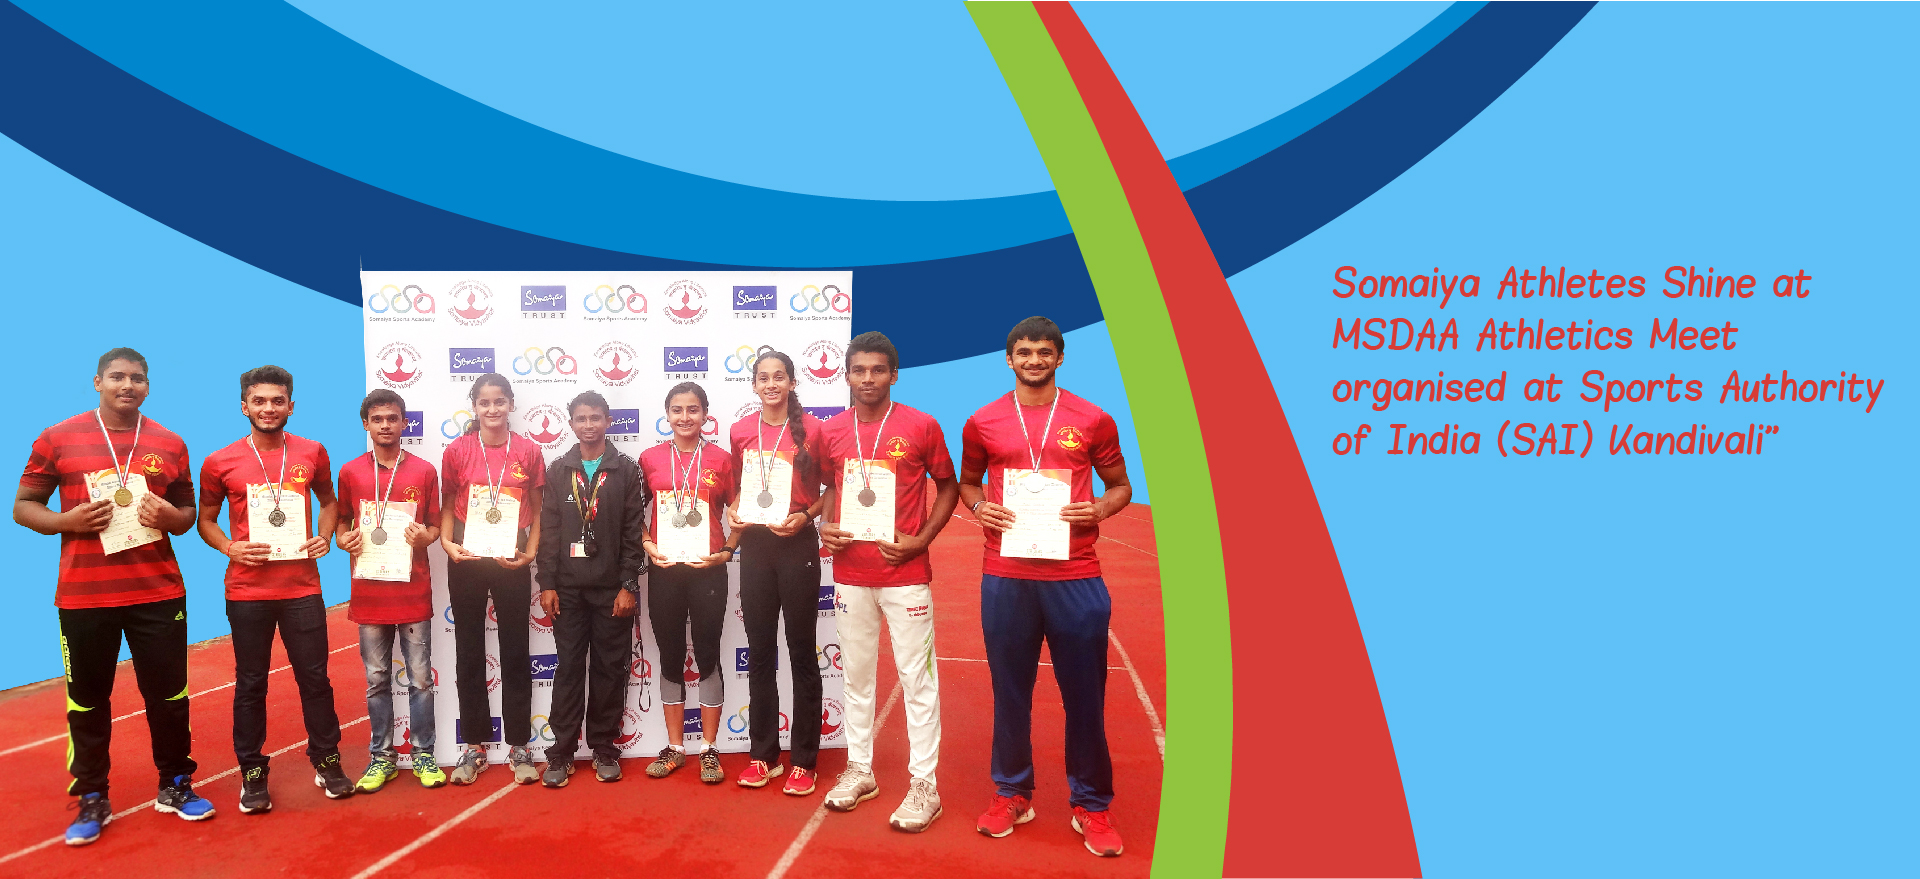 Somaiya athelets shine at MSDAA athletics meet organised at sports authority of india (SAI) kandivali